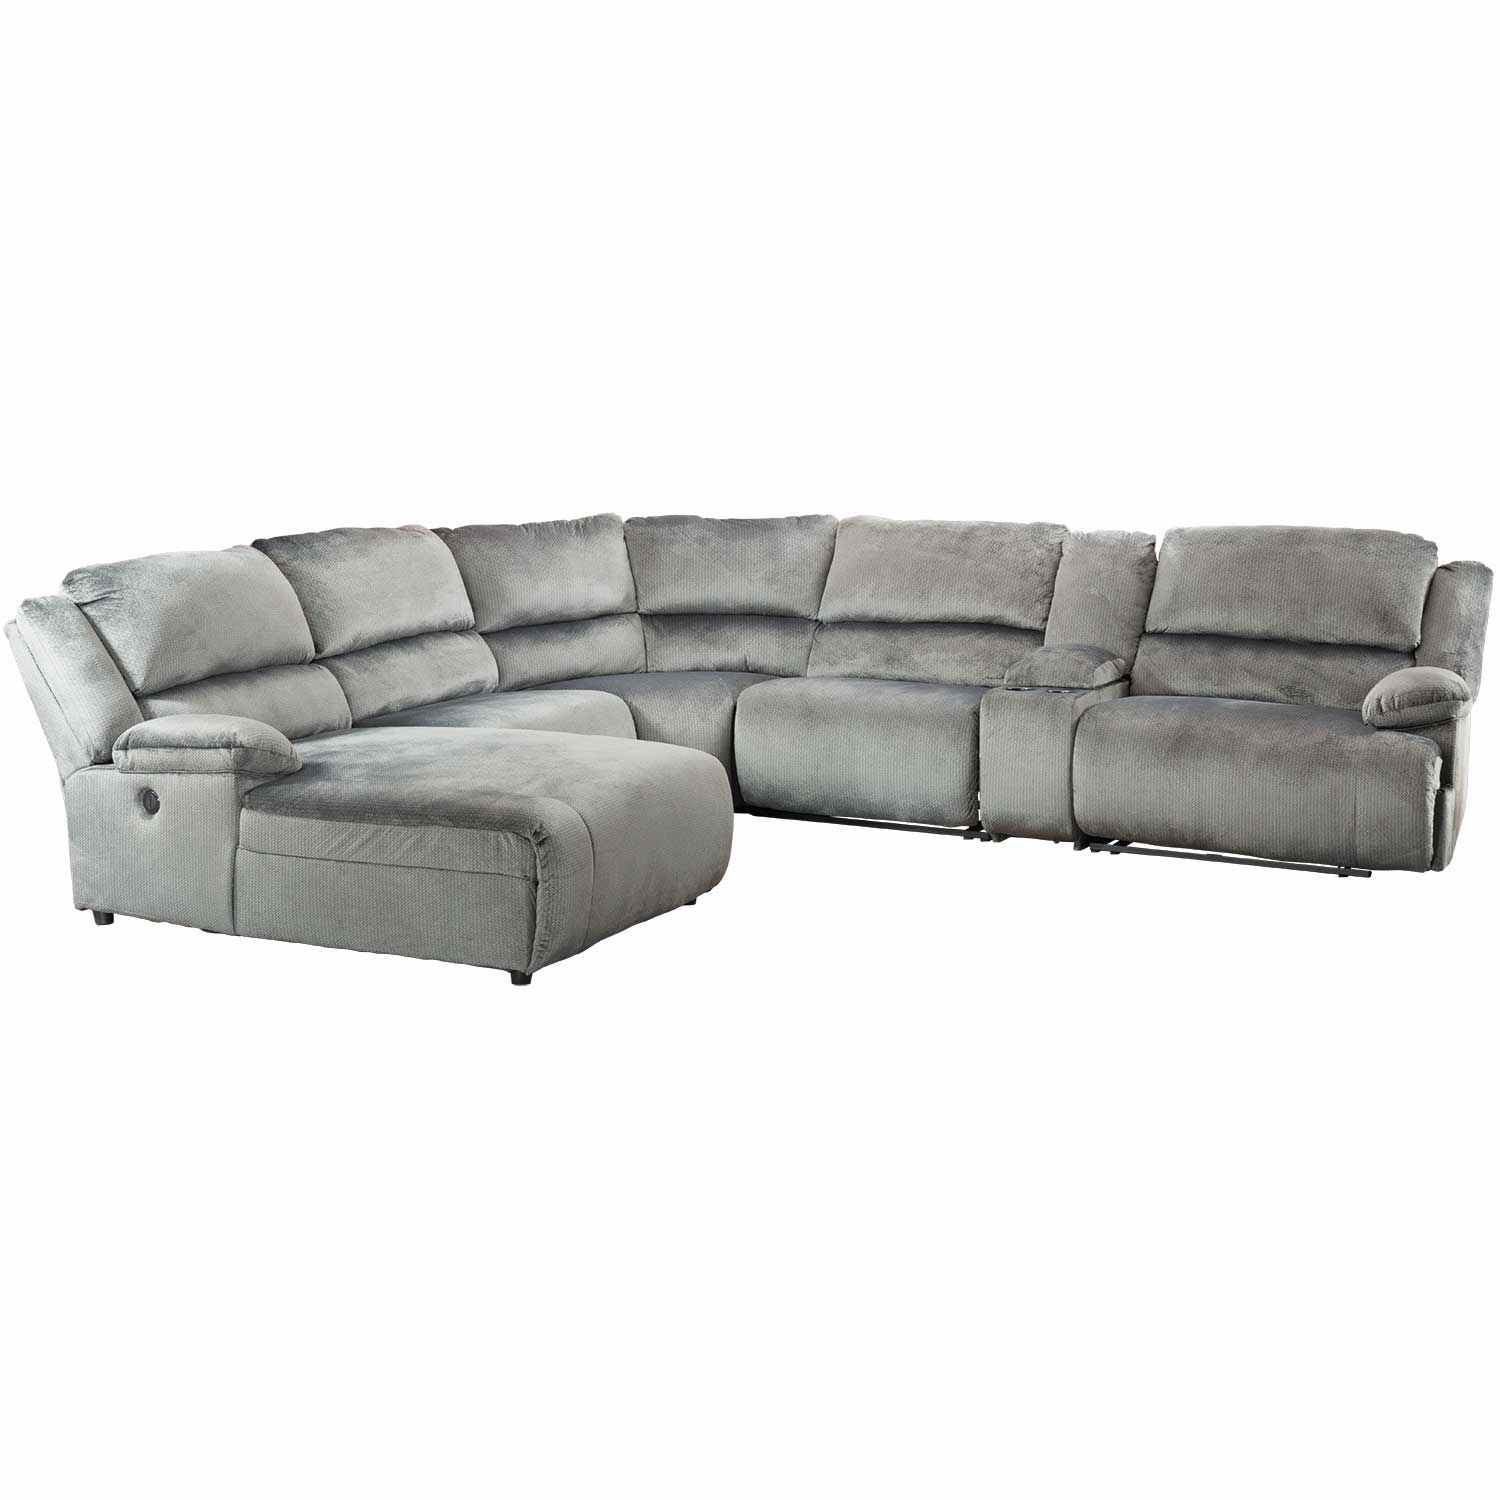 Picture of Clonmel 6 Piece Reclining Sectional with LAF Chaise